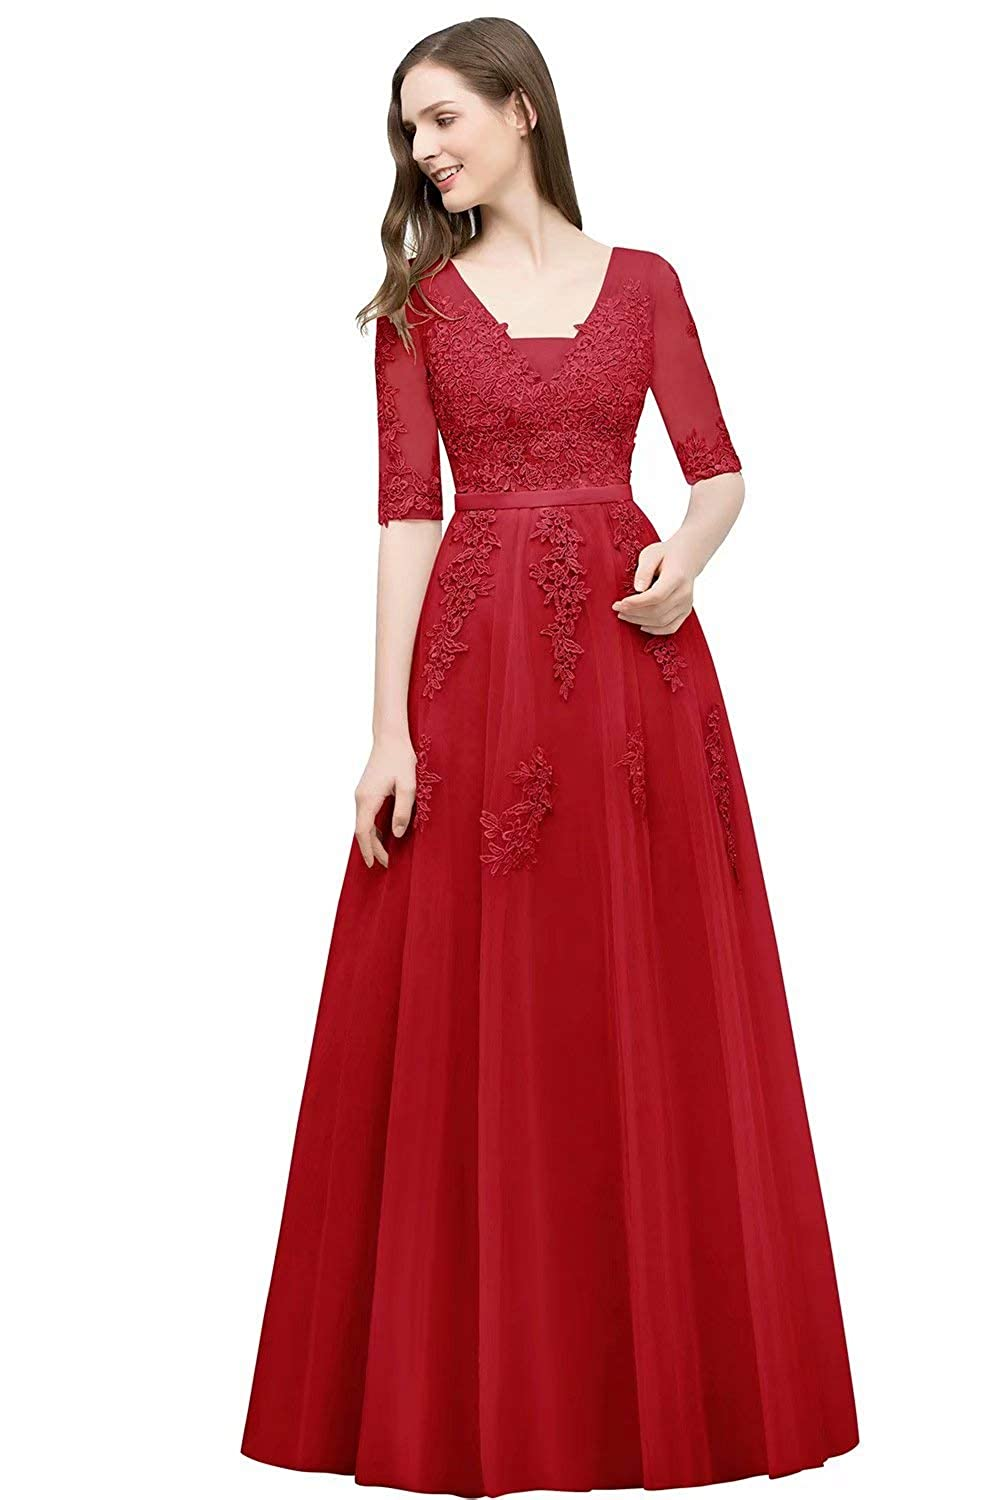 Red Unions Women V Neck Tulle Prom Party Gown A Line Appliques Lace Formal Backless Evening Dress